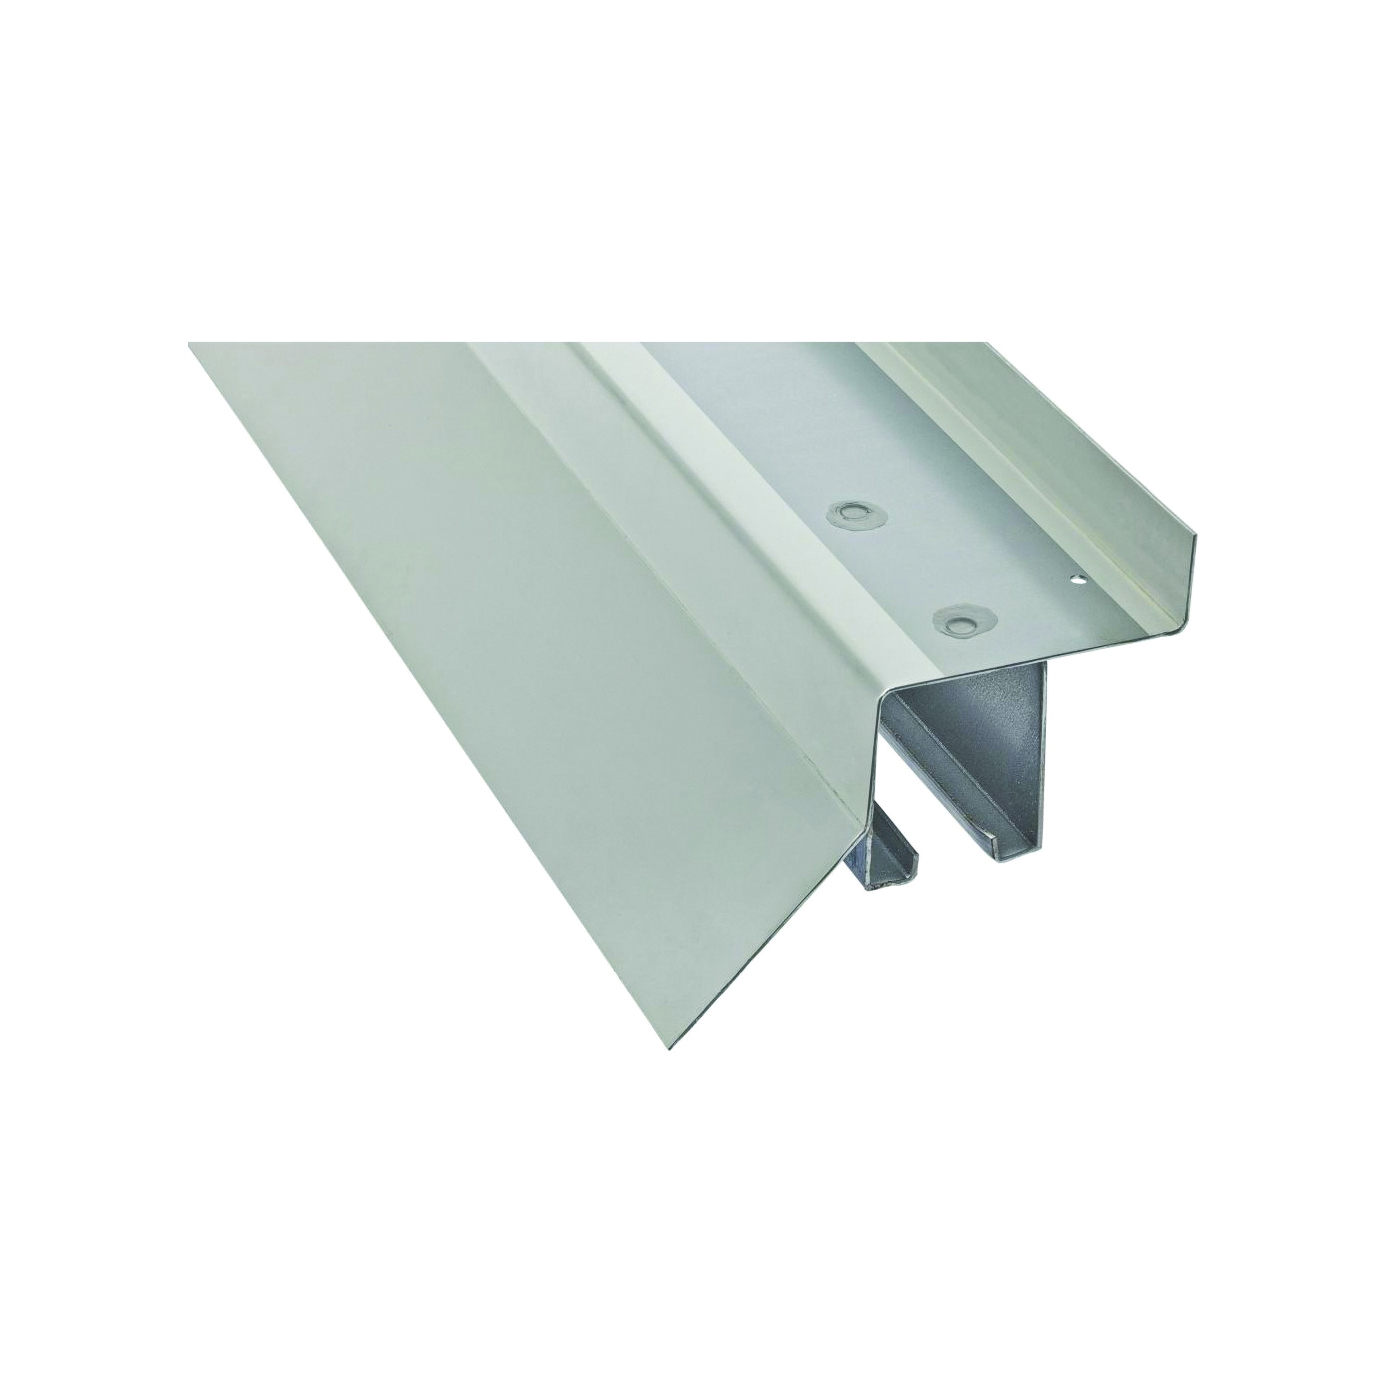 Picture of National Hardware N174-136 Box Rail, Steel, Galvanized, 12 ft L